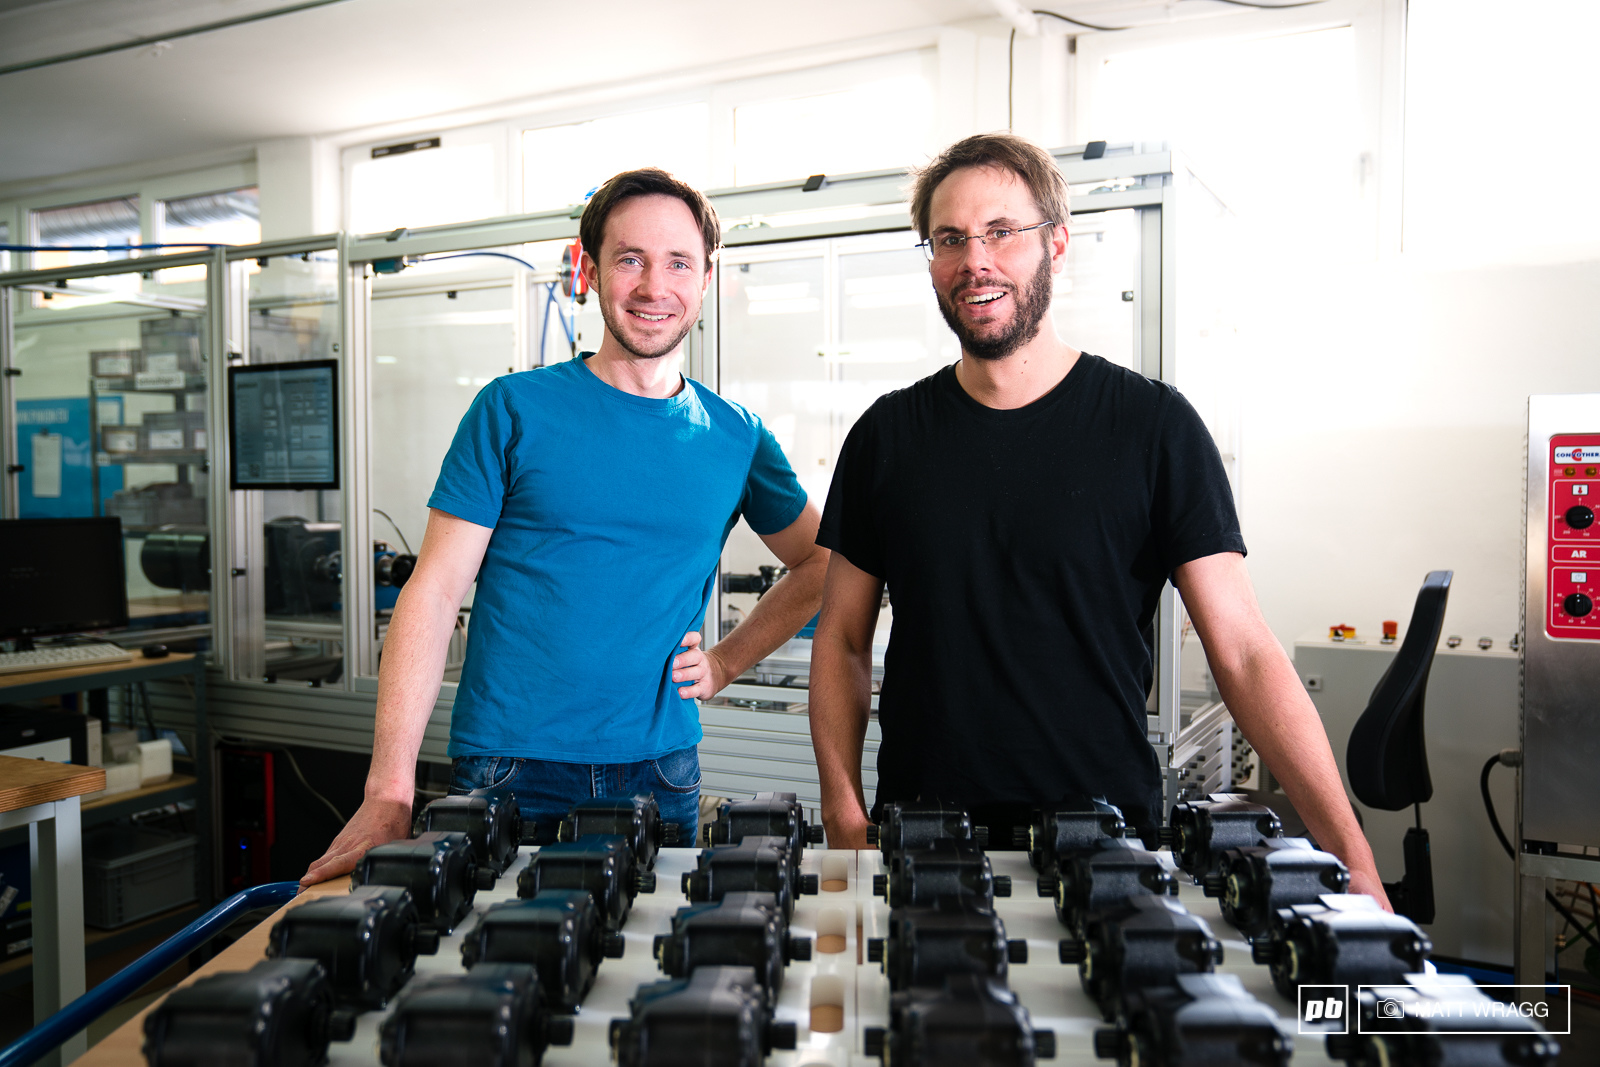 Christoph Lerman and Michael the founders of Pinion.